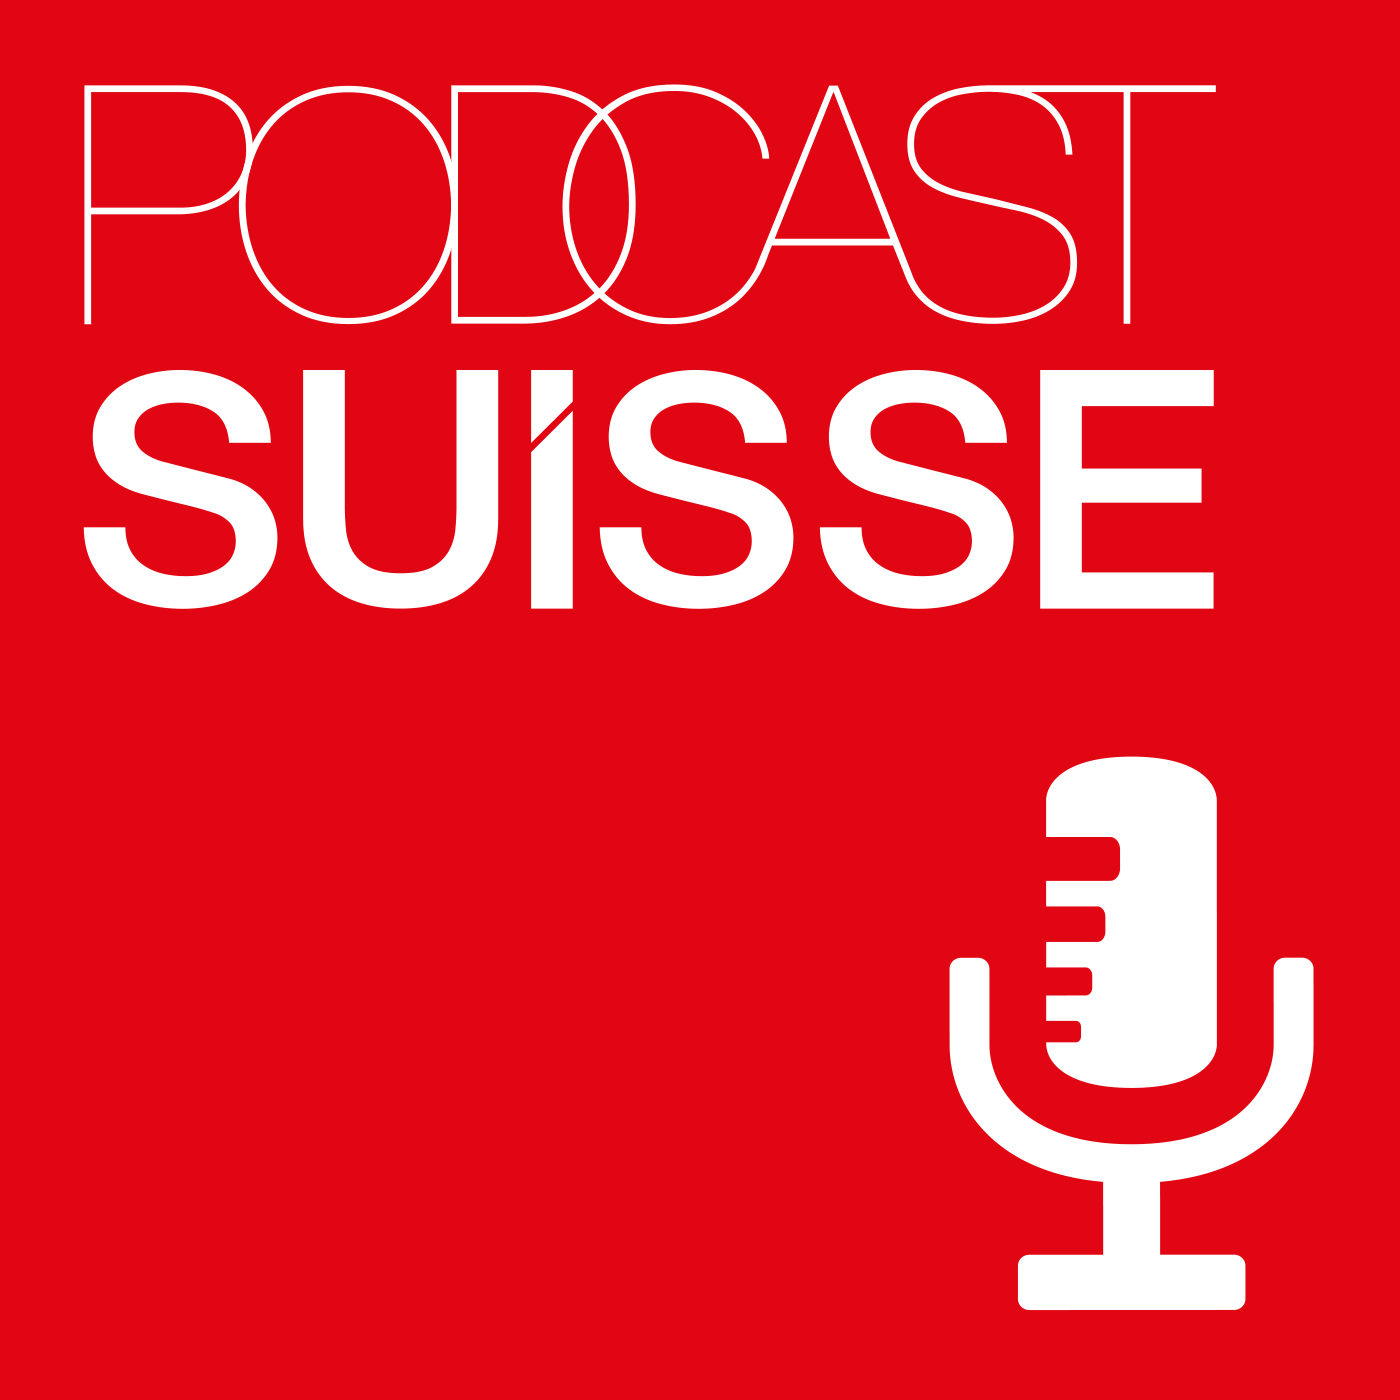 Les coulisses de PodcastSuisse